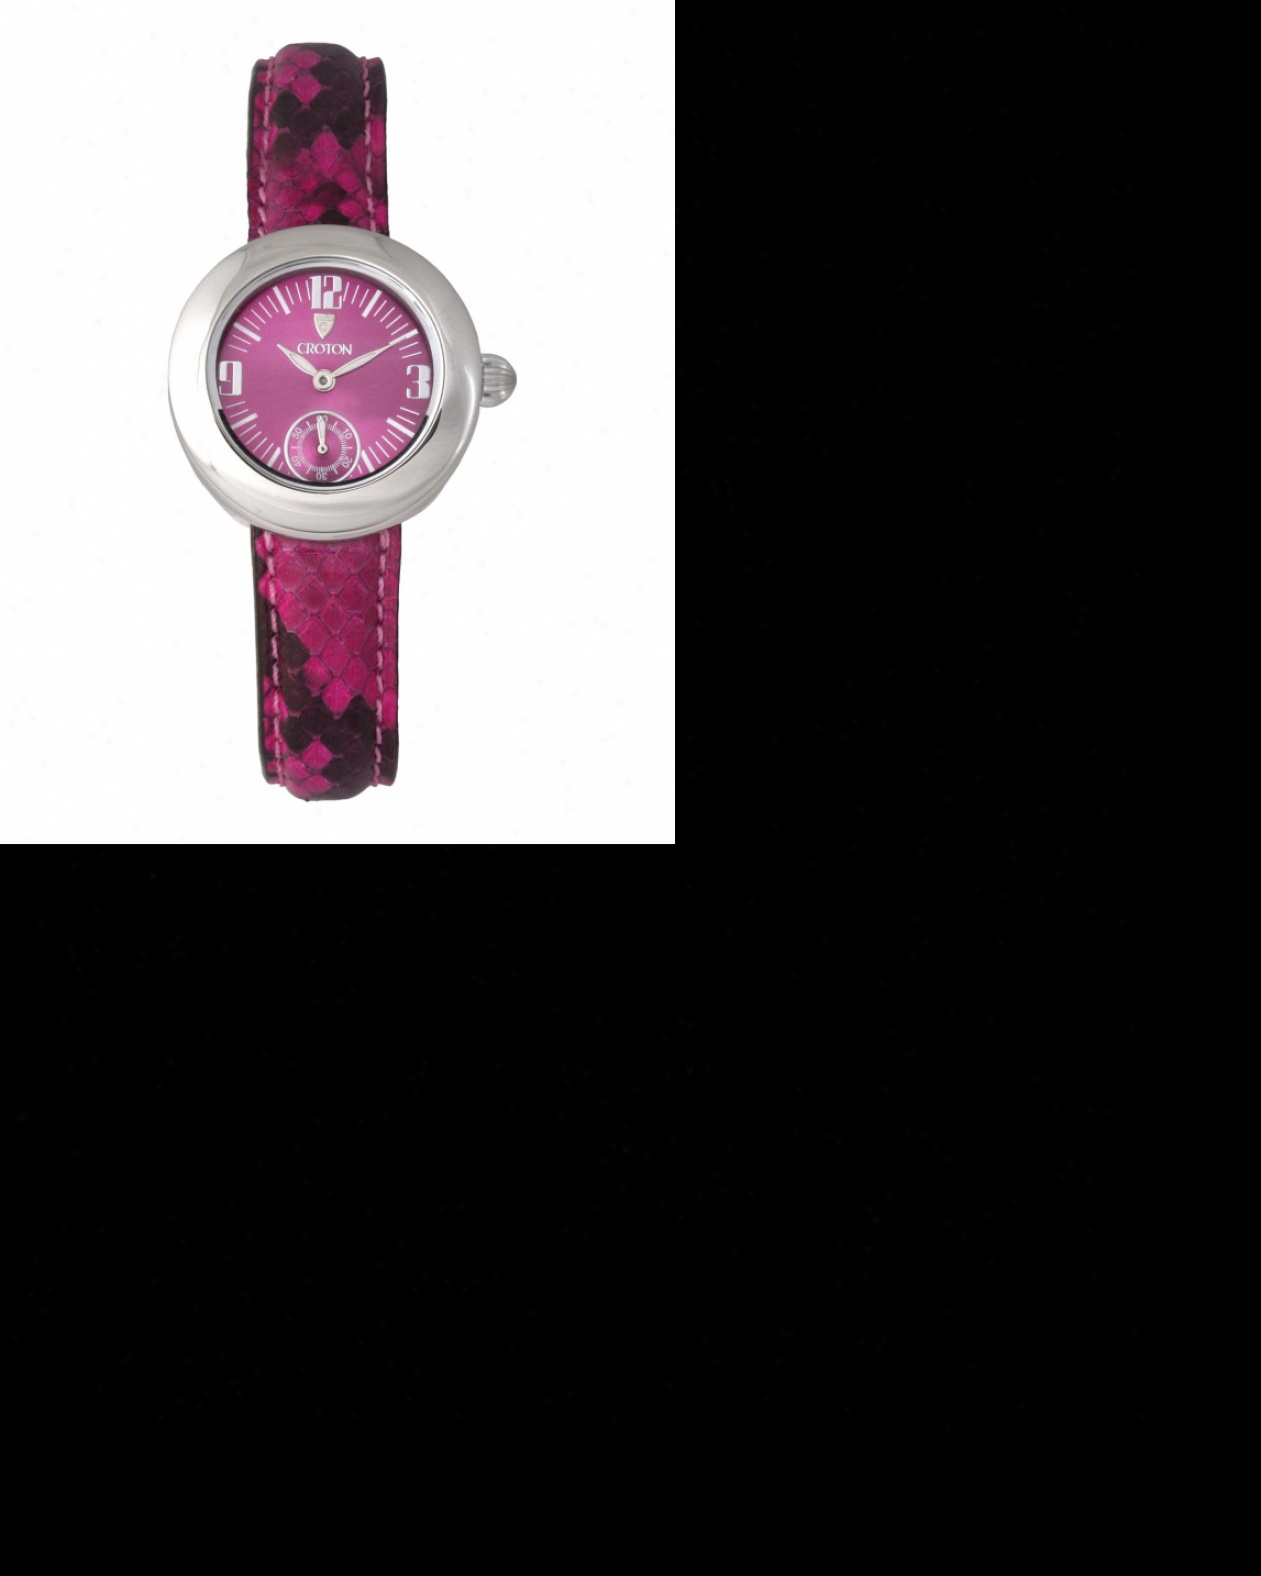 Ladies Croton Reserve Watch With Minnow Python Leather Strap